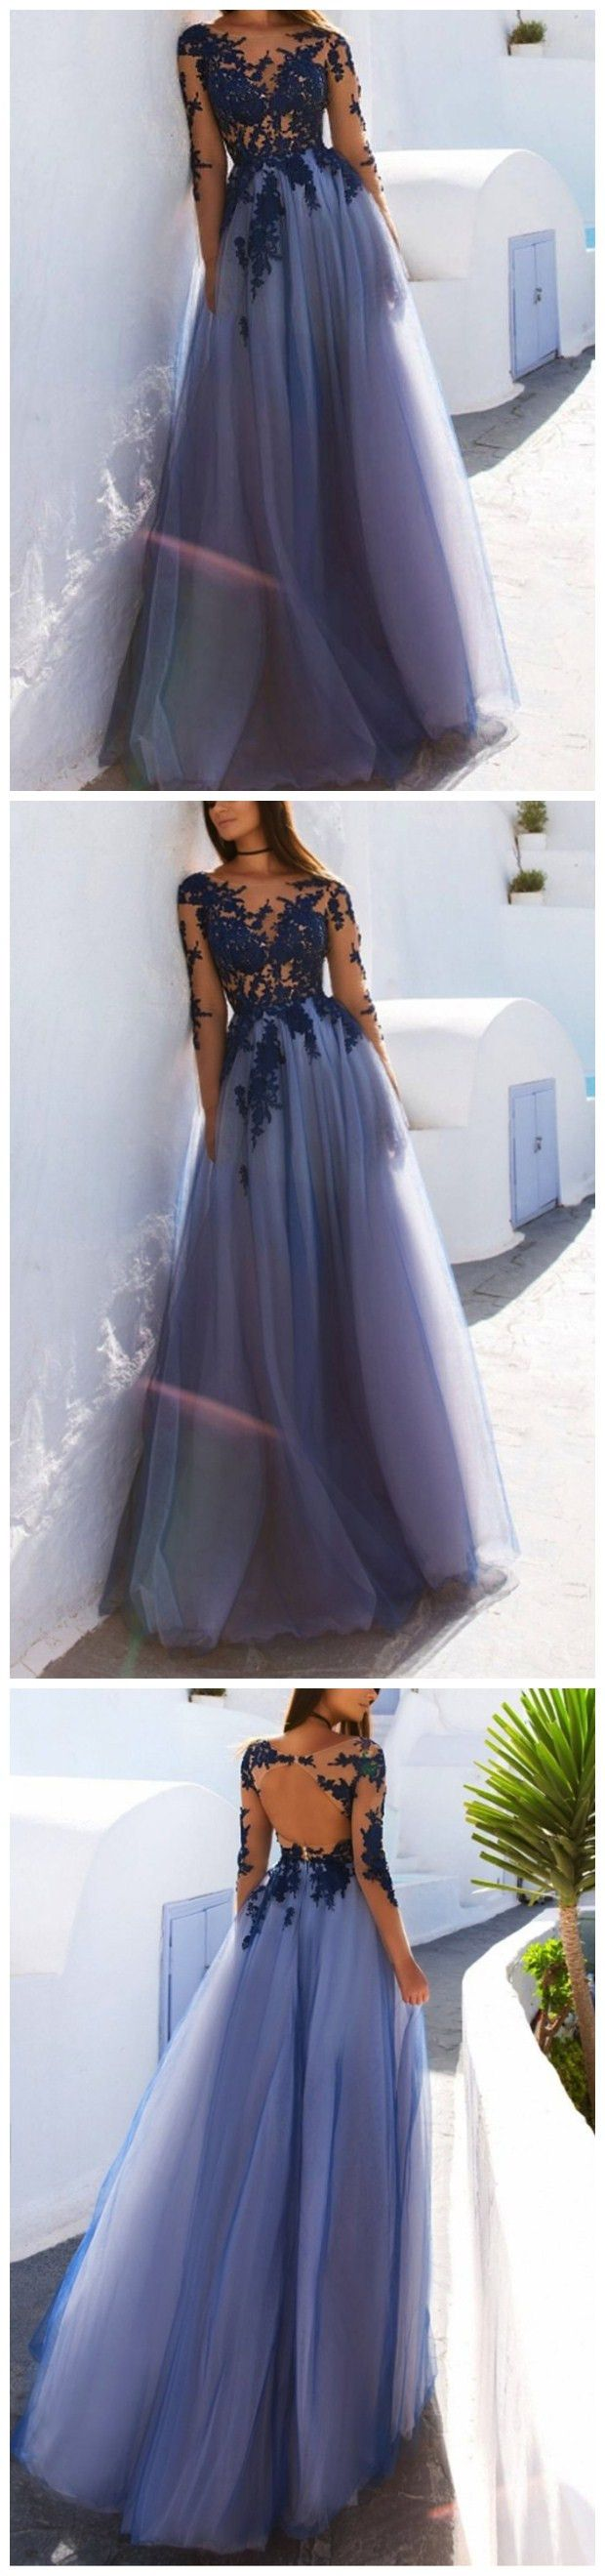 2018 Prom Dress, prom dresses long,prom dresses modest,prom dresses boho,prom dresses lavender ,prom dresses cheap,prom dresses with sleeve,beautiful prom dresses,prom dresses 2018,prom dresses elegant,prom dresses a line #amyprom #longpromdress #fashion #love #party #formal